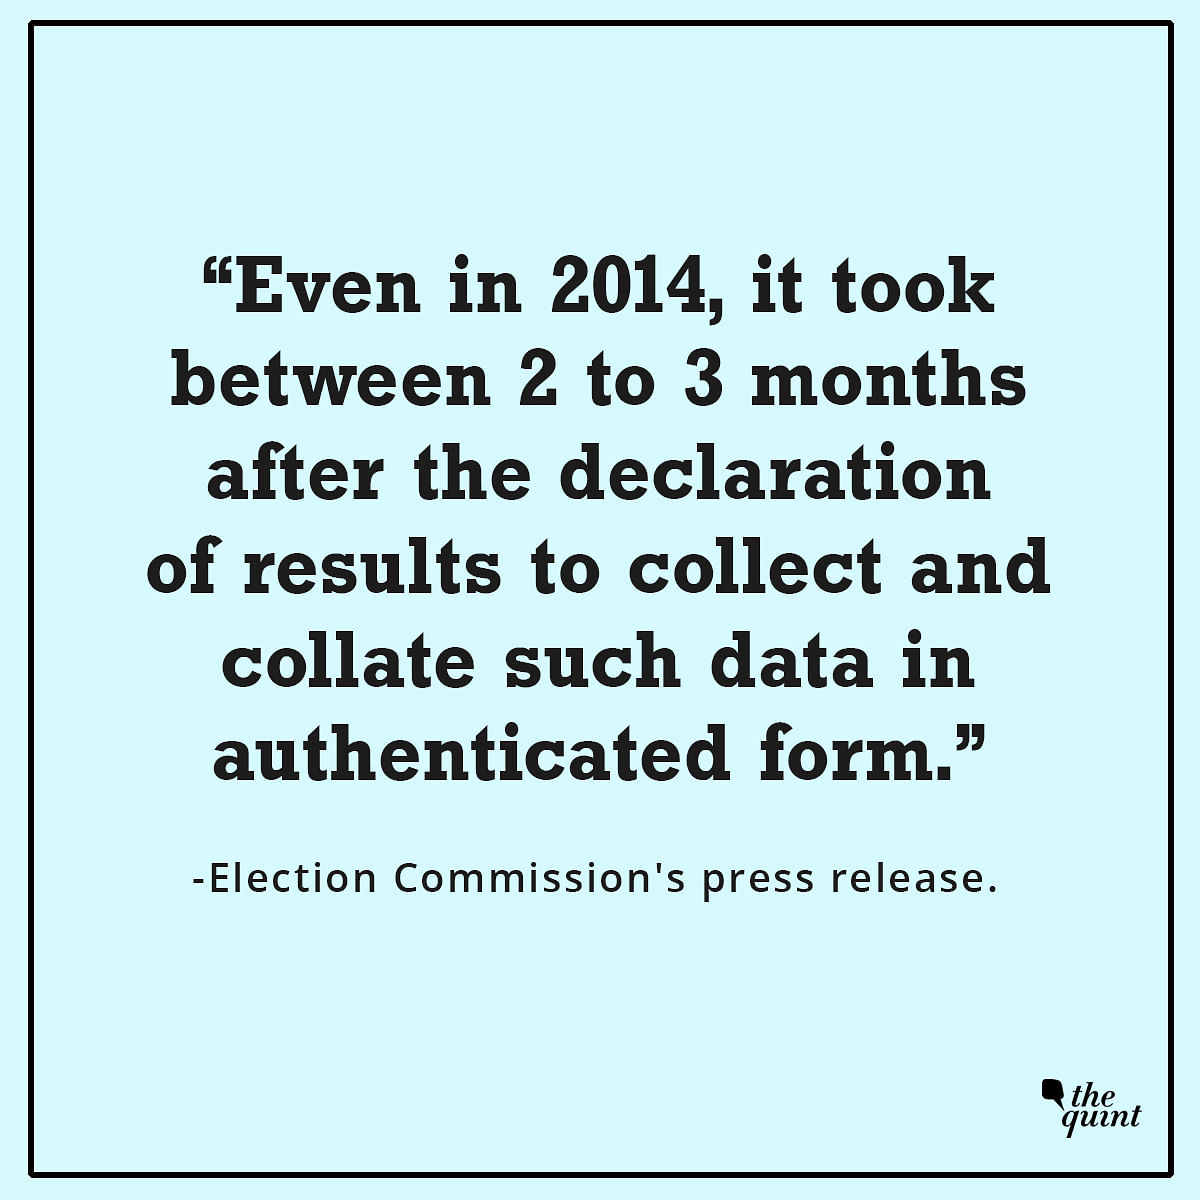 Excerpts from the Election Commission's press release